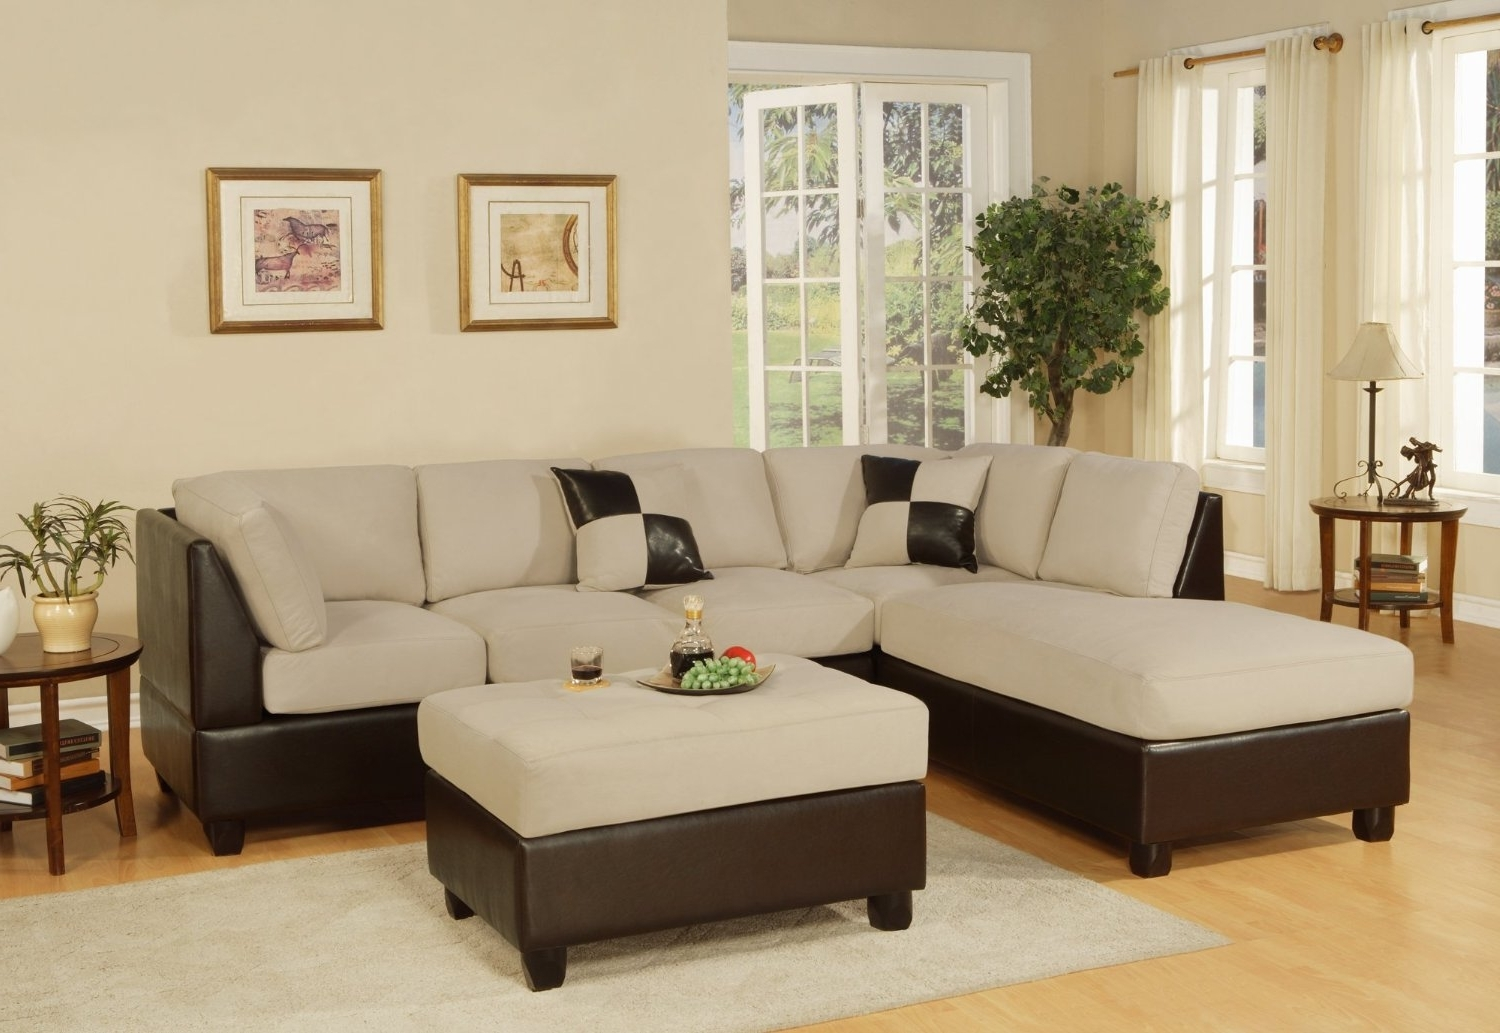 Furniture : Sectional Sofa 96X96 Sectional Couch Costco Sectional Throughout Fashionable 96X96 Sectional Sofas (View 10 of 15)